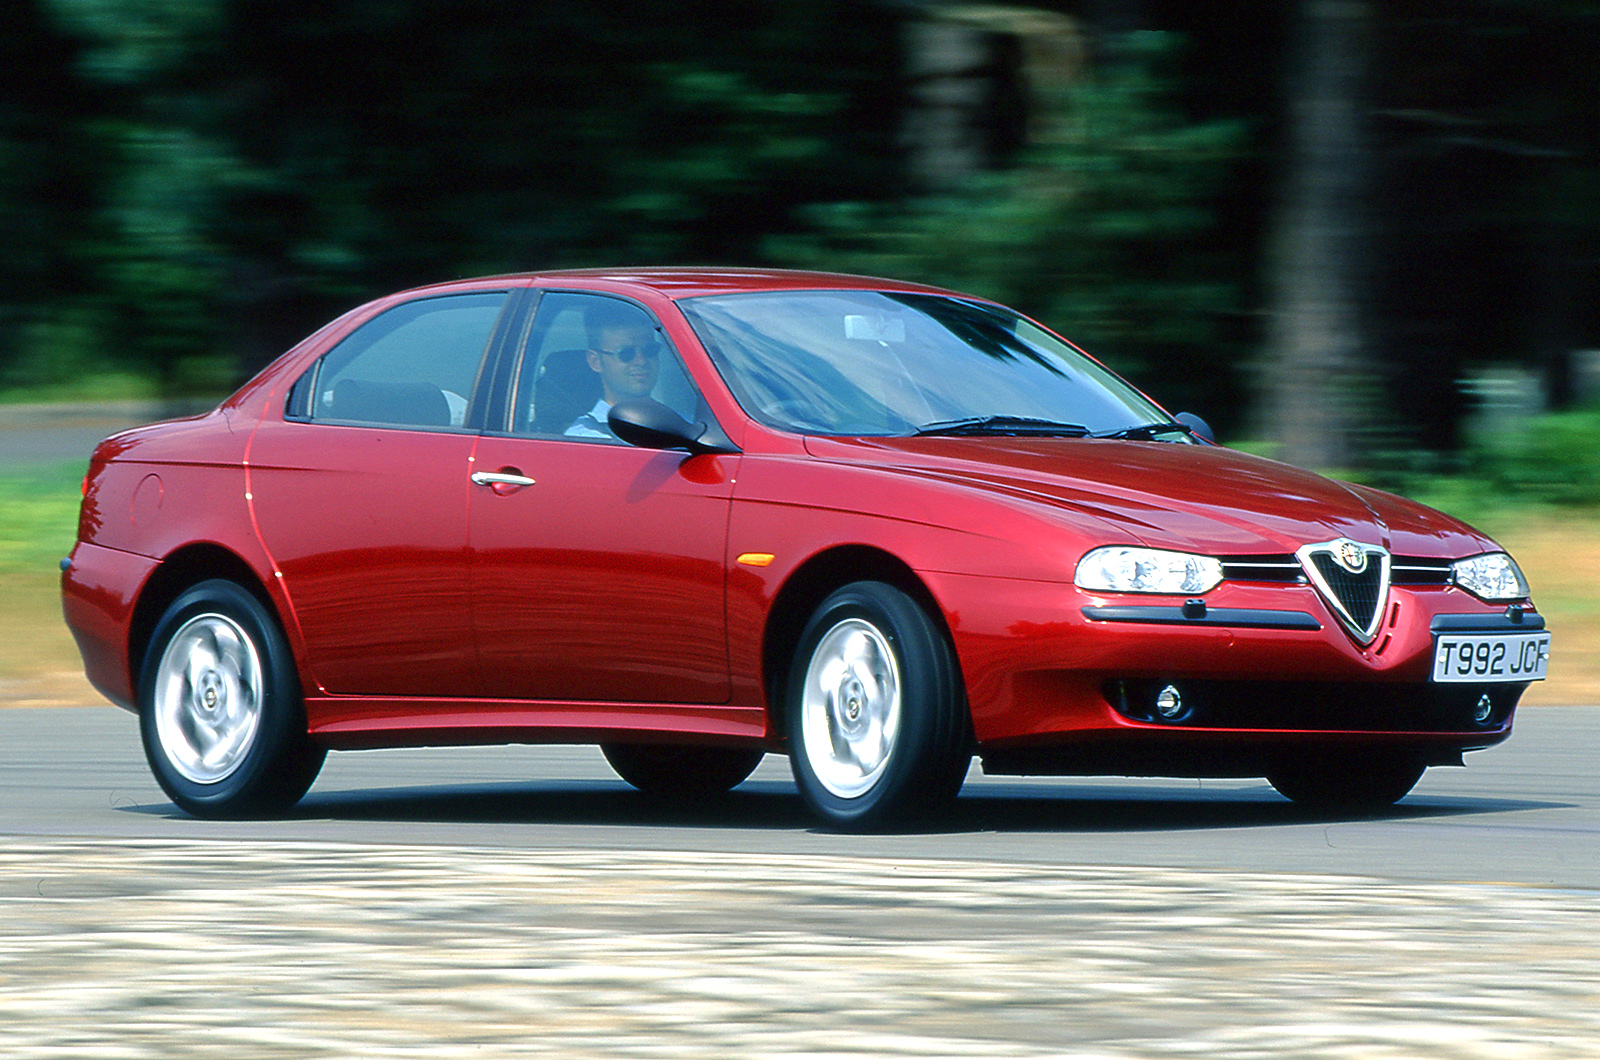 Chrysler has spent its life in the shadow of its two larger Detroit rivals, General Motors and Ford.